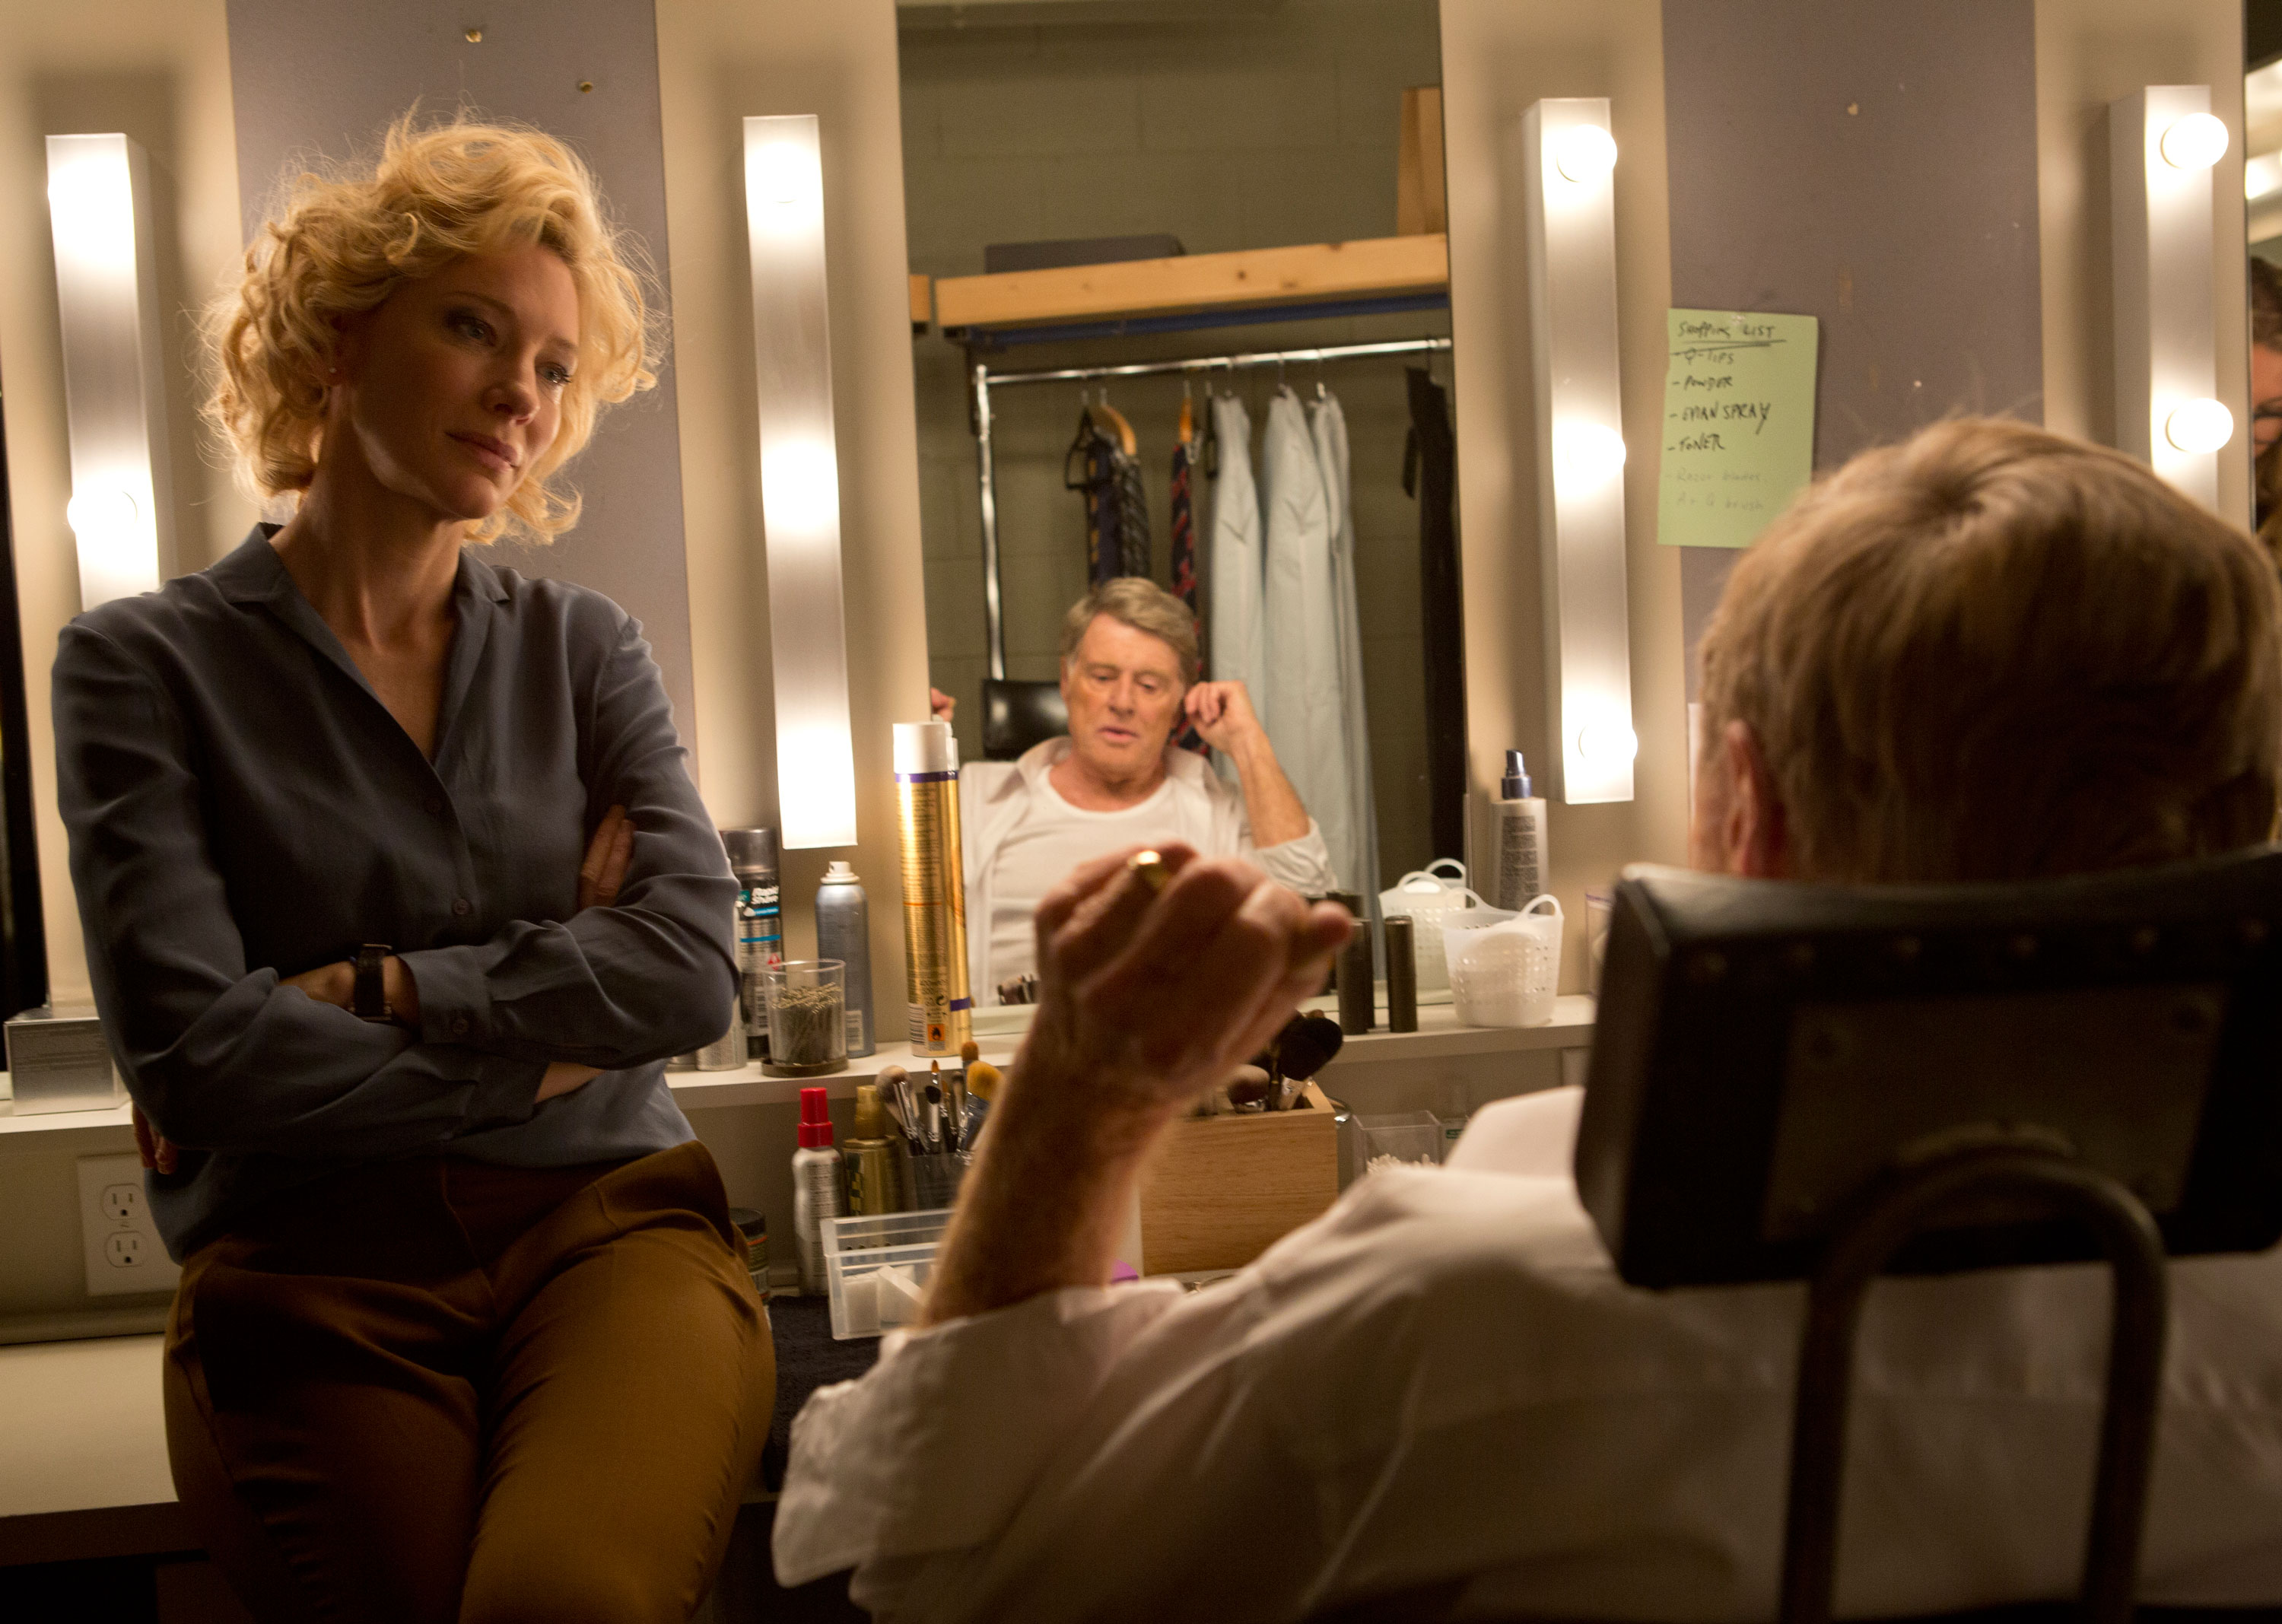 truth cate blanchett robert redford